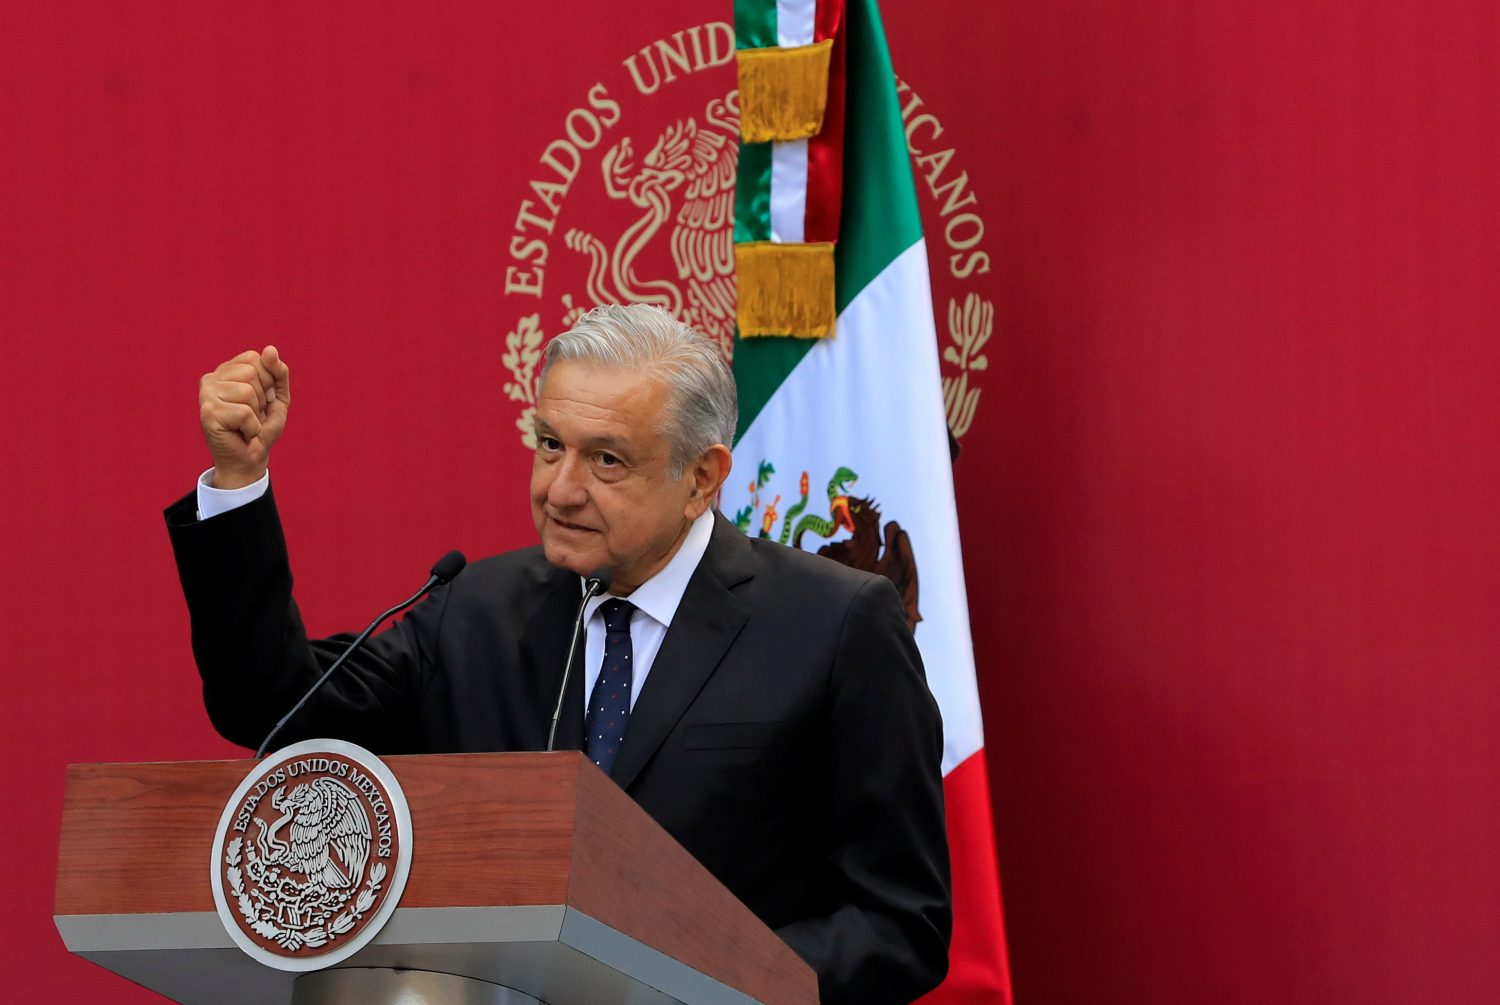 FILE PHOTO: Mexico's President Andres Manuel Lopez Obrador gestures during a meeting with the Mexican delegation competing at the Pan American Games Lima 2019, in Mexico City, Mexico, July 15, 2019. REUTERS/Carlos Jasso